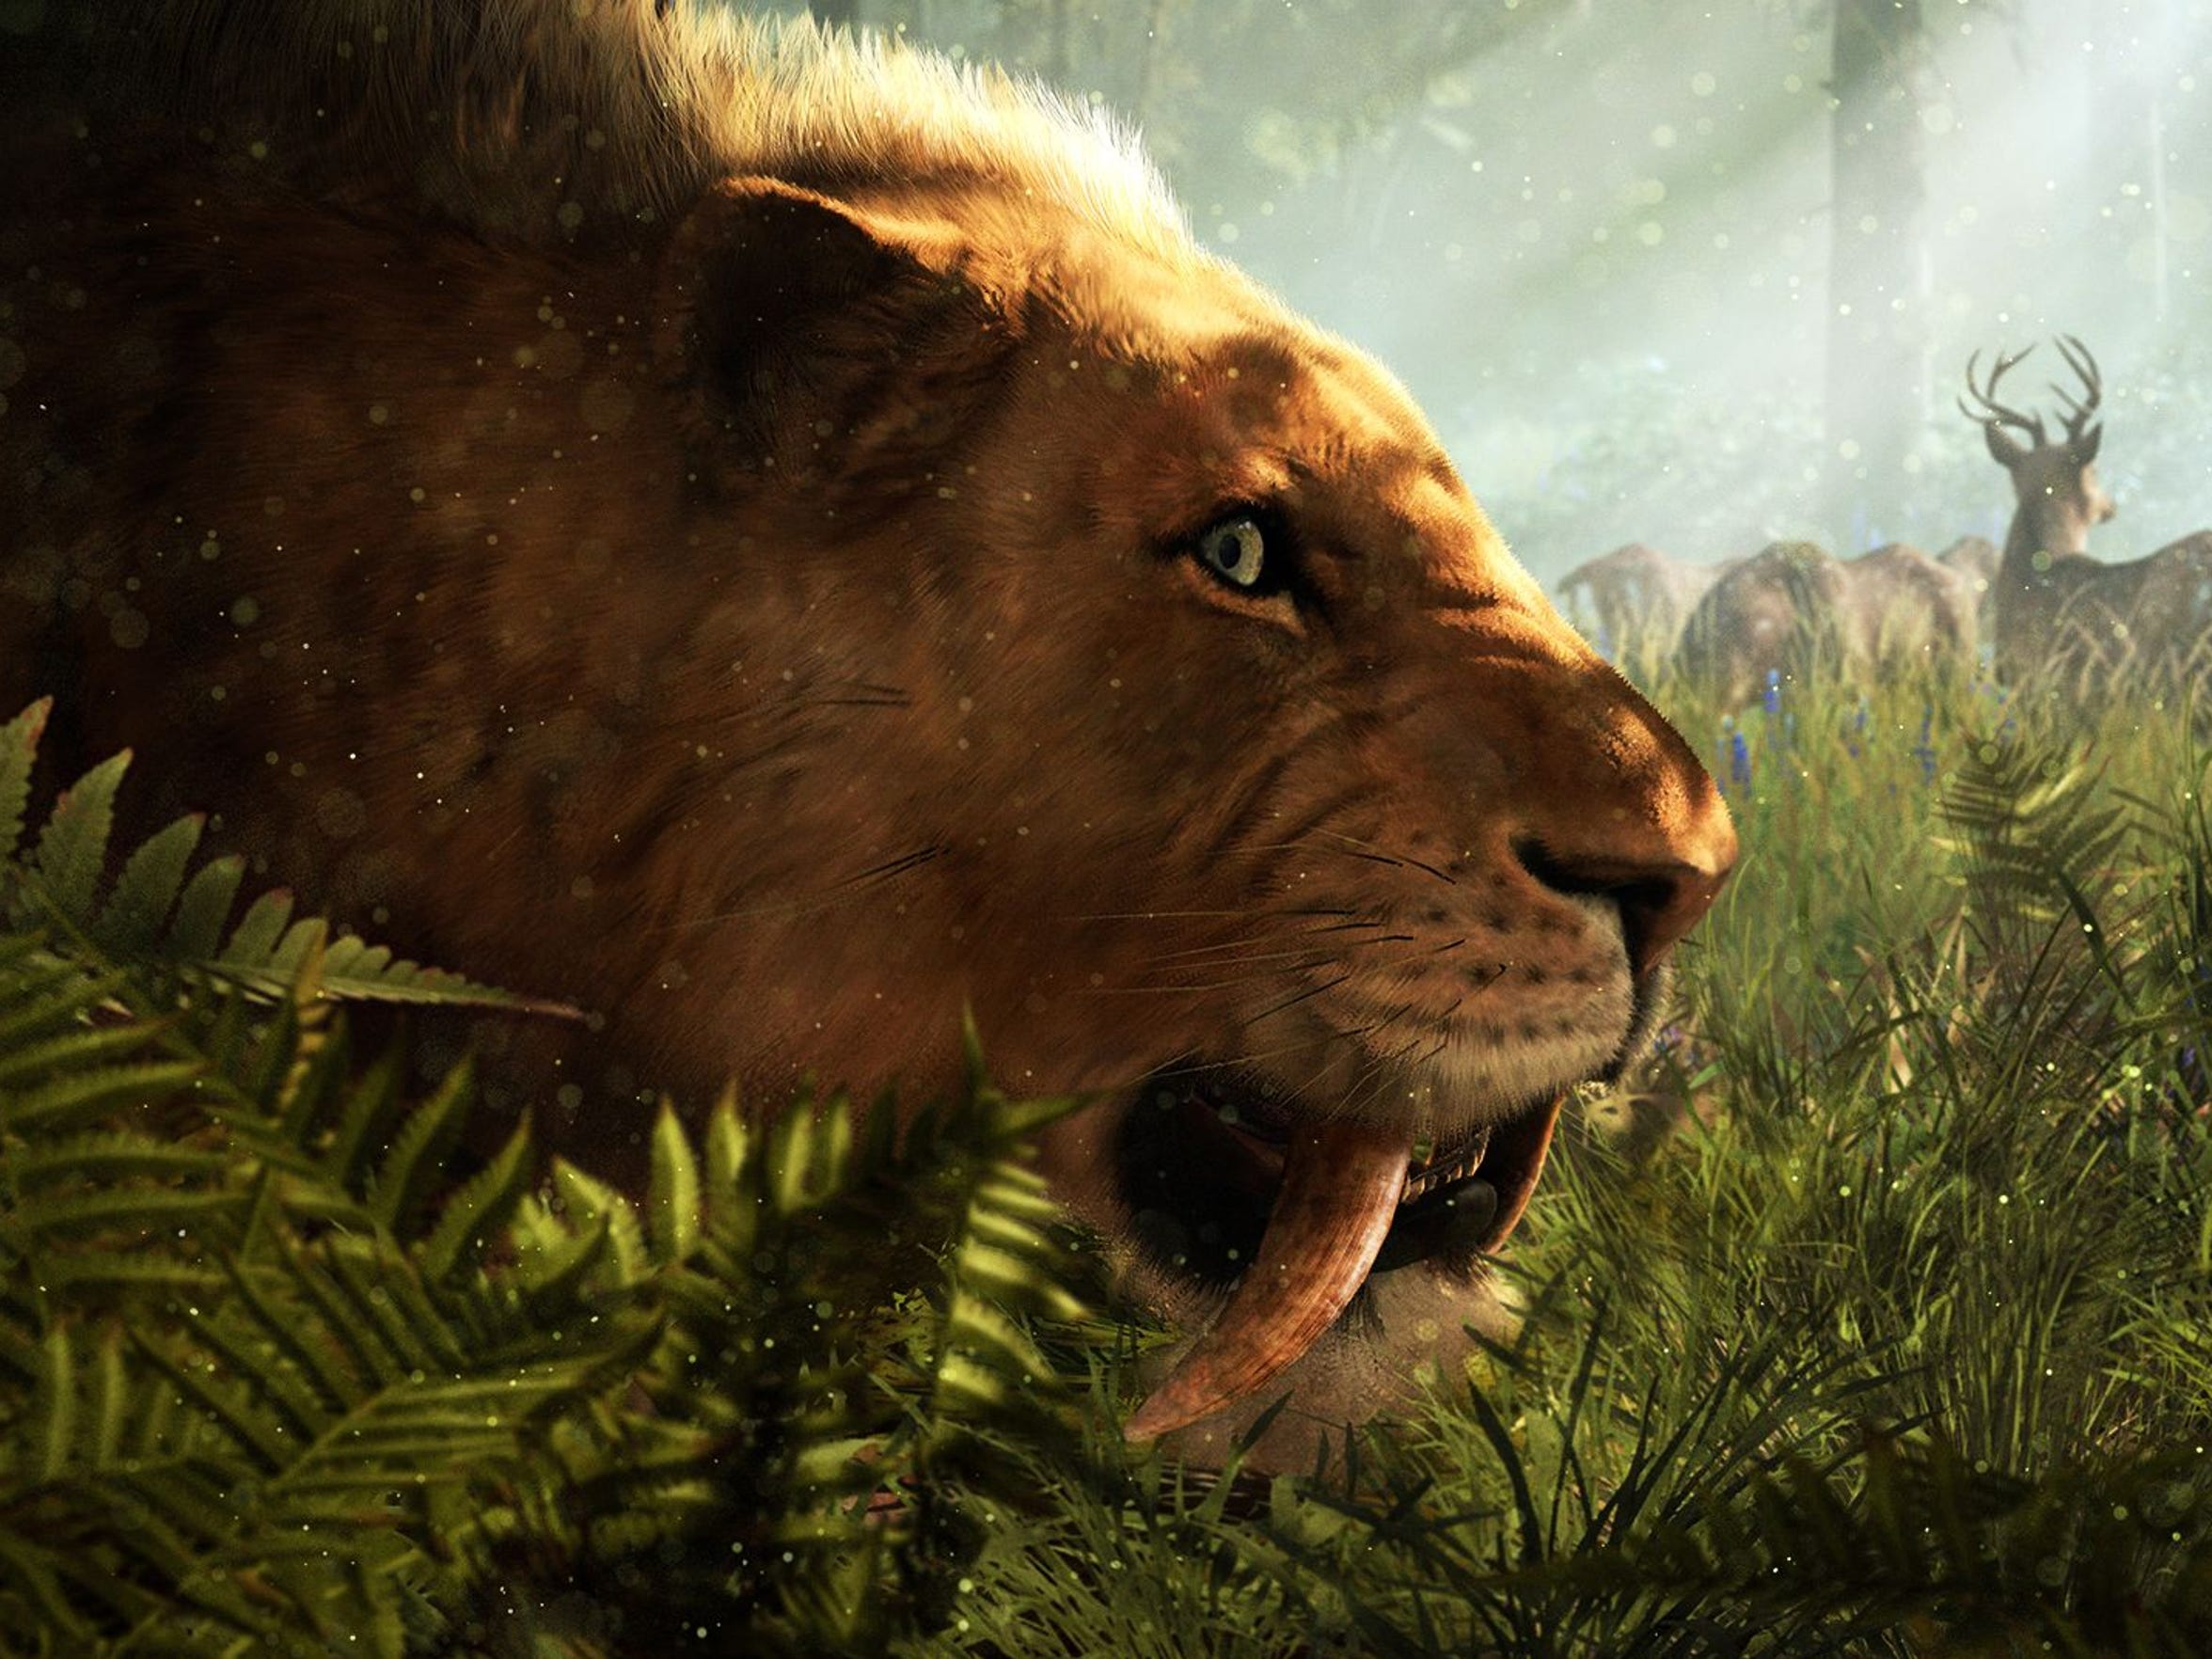 Humans are our friends, not food, Mr. Saber-toothed tiger. Somehow, we doubt it'll listen.